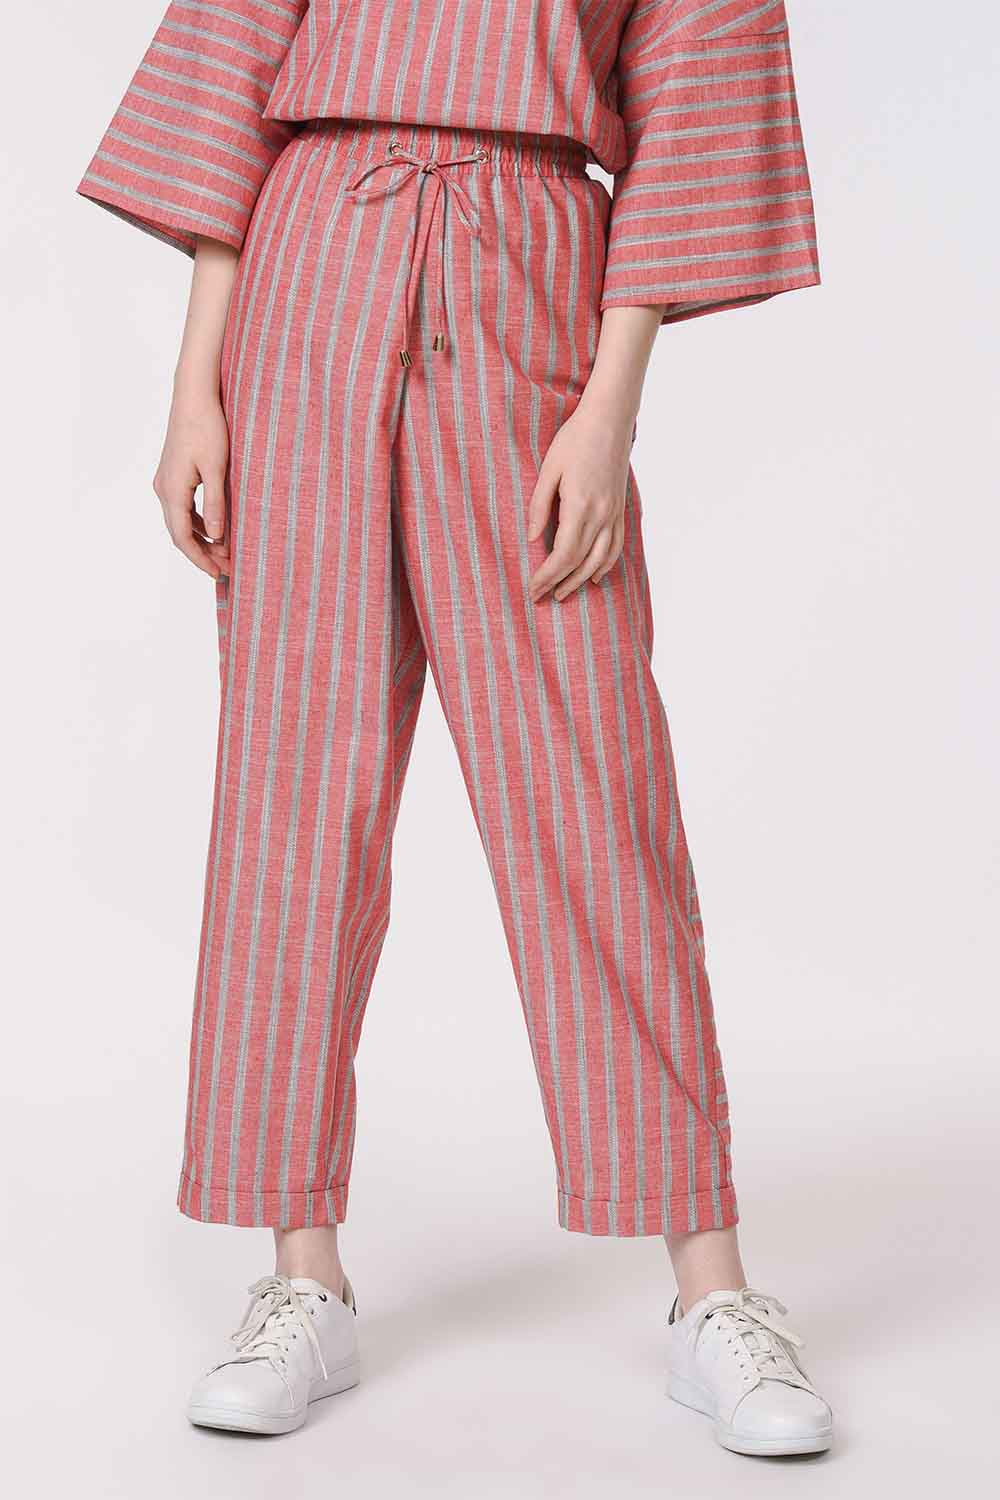 MIZALLE Striped Piece Trousers (Orange-Red) (1)